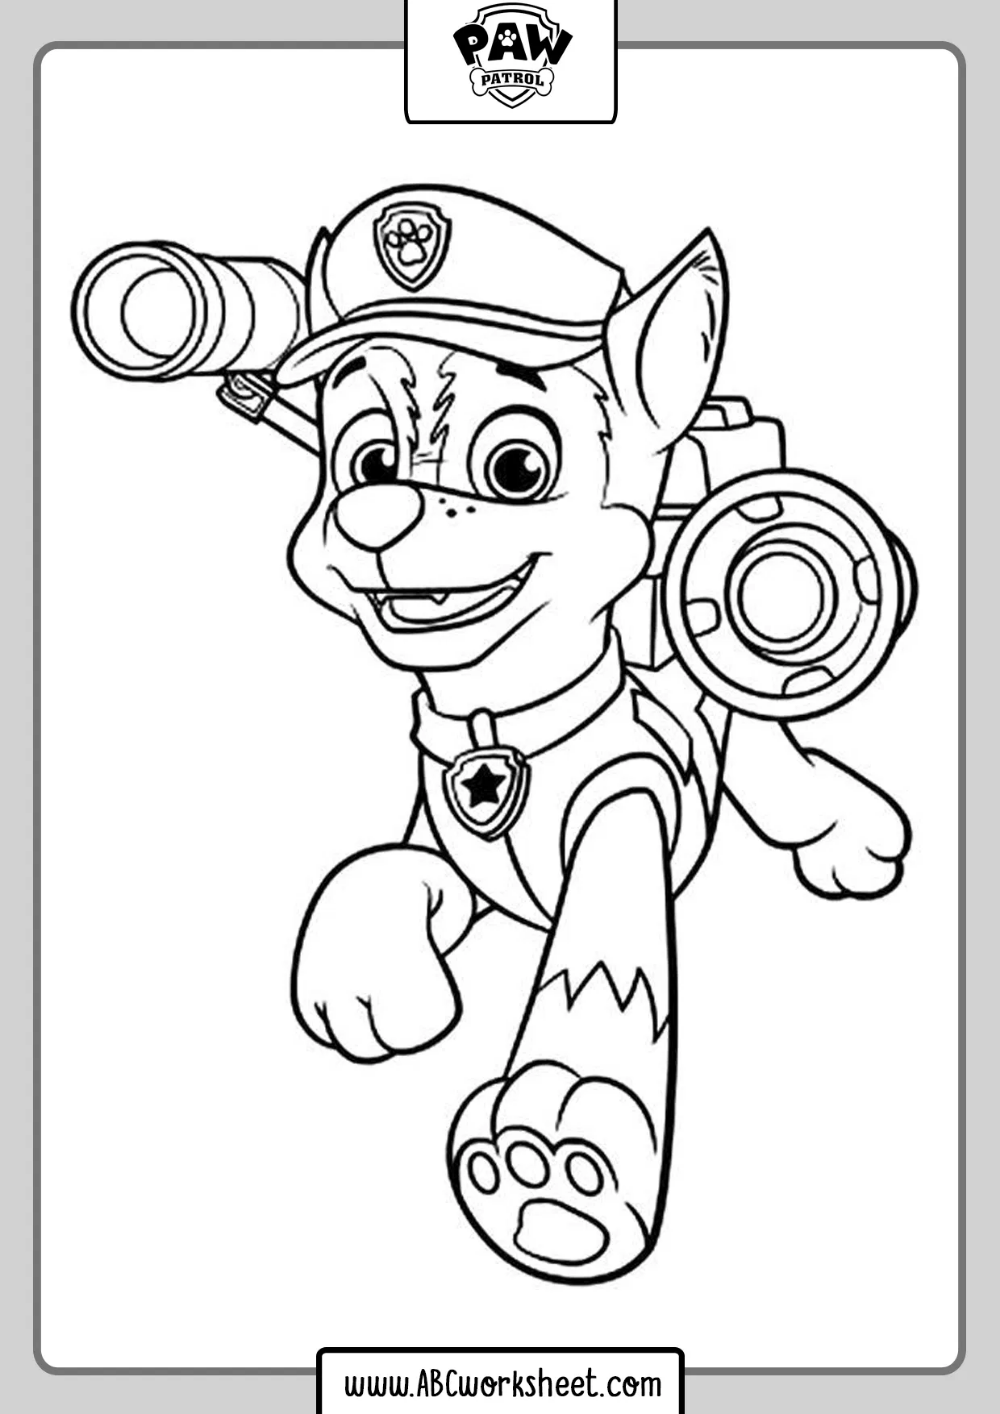 Paw Patrol Drawings To Coloring Chase Paw Patrol Coloring Pages Paw Patrol Coloring Cartoon Coloring Pages